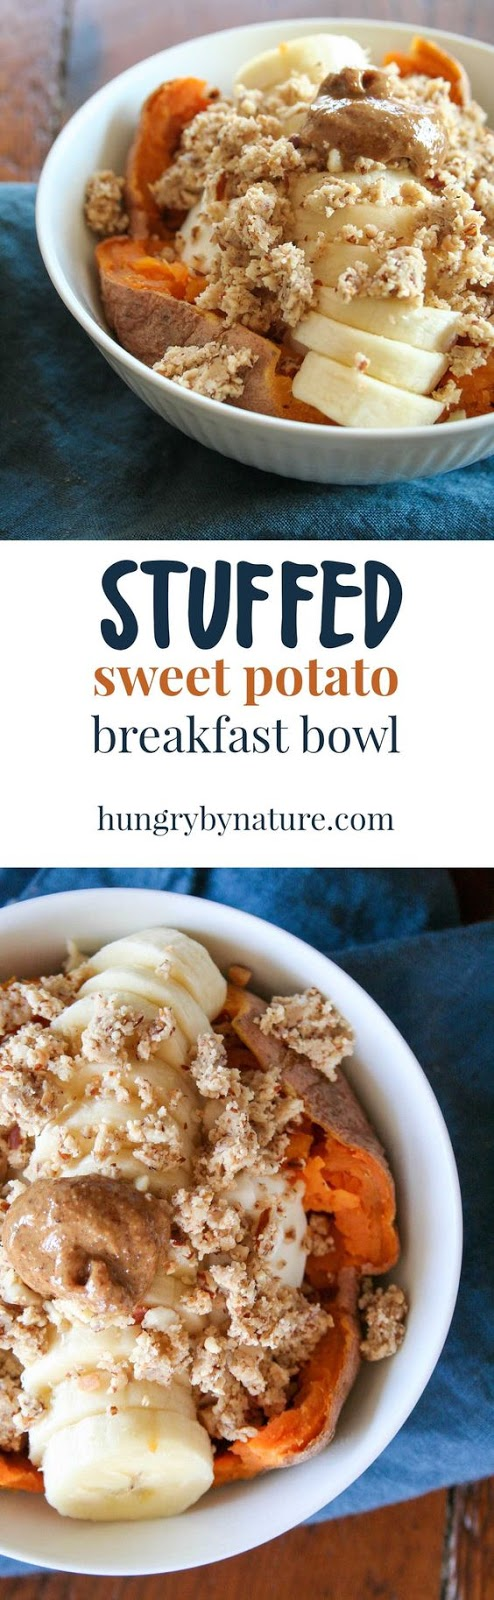 Stuffed Sweet Potato Breakfast Bowl